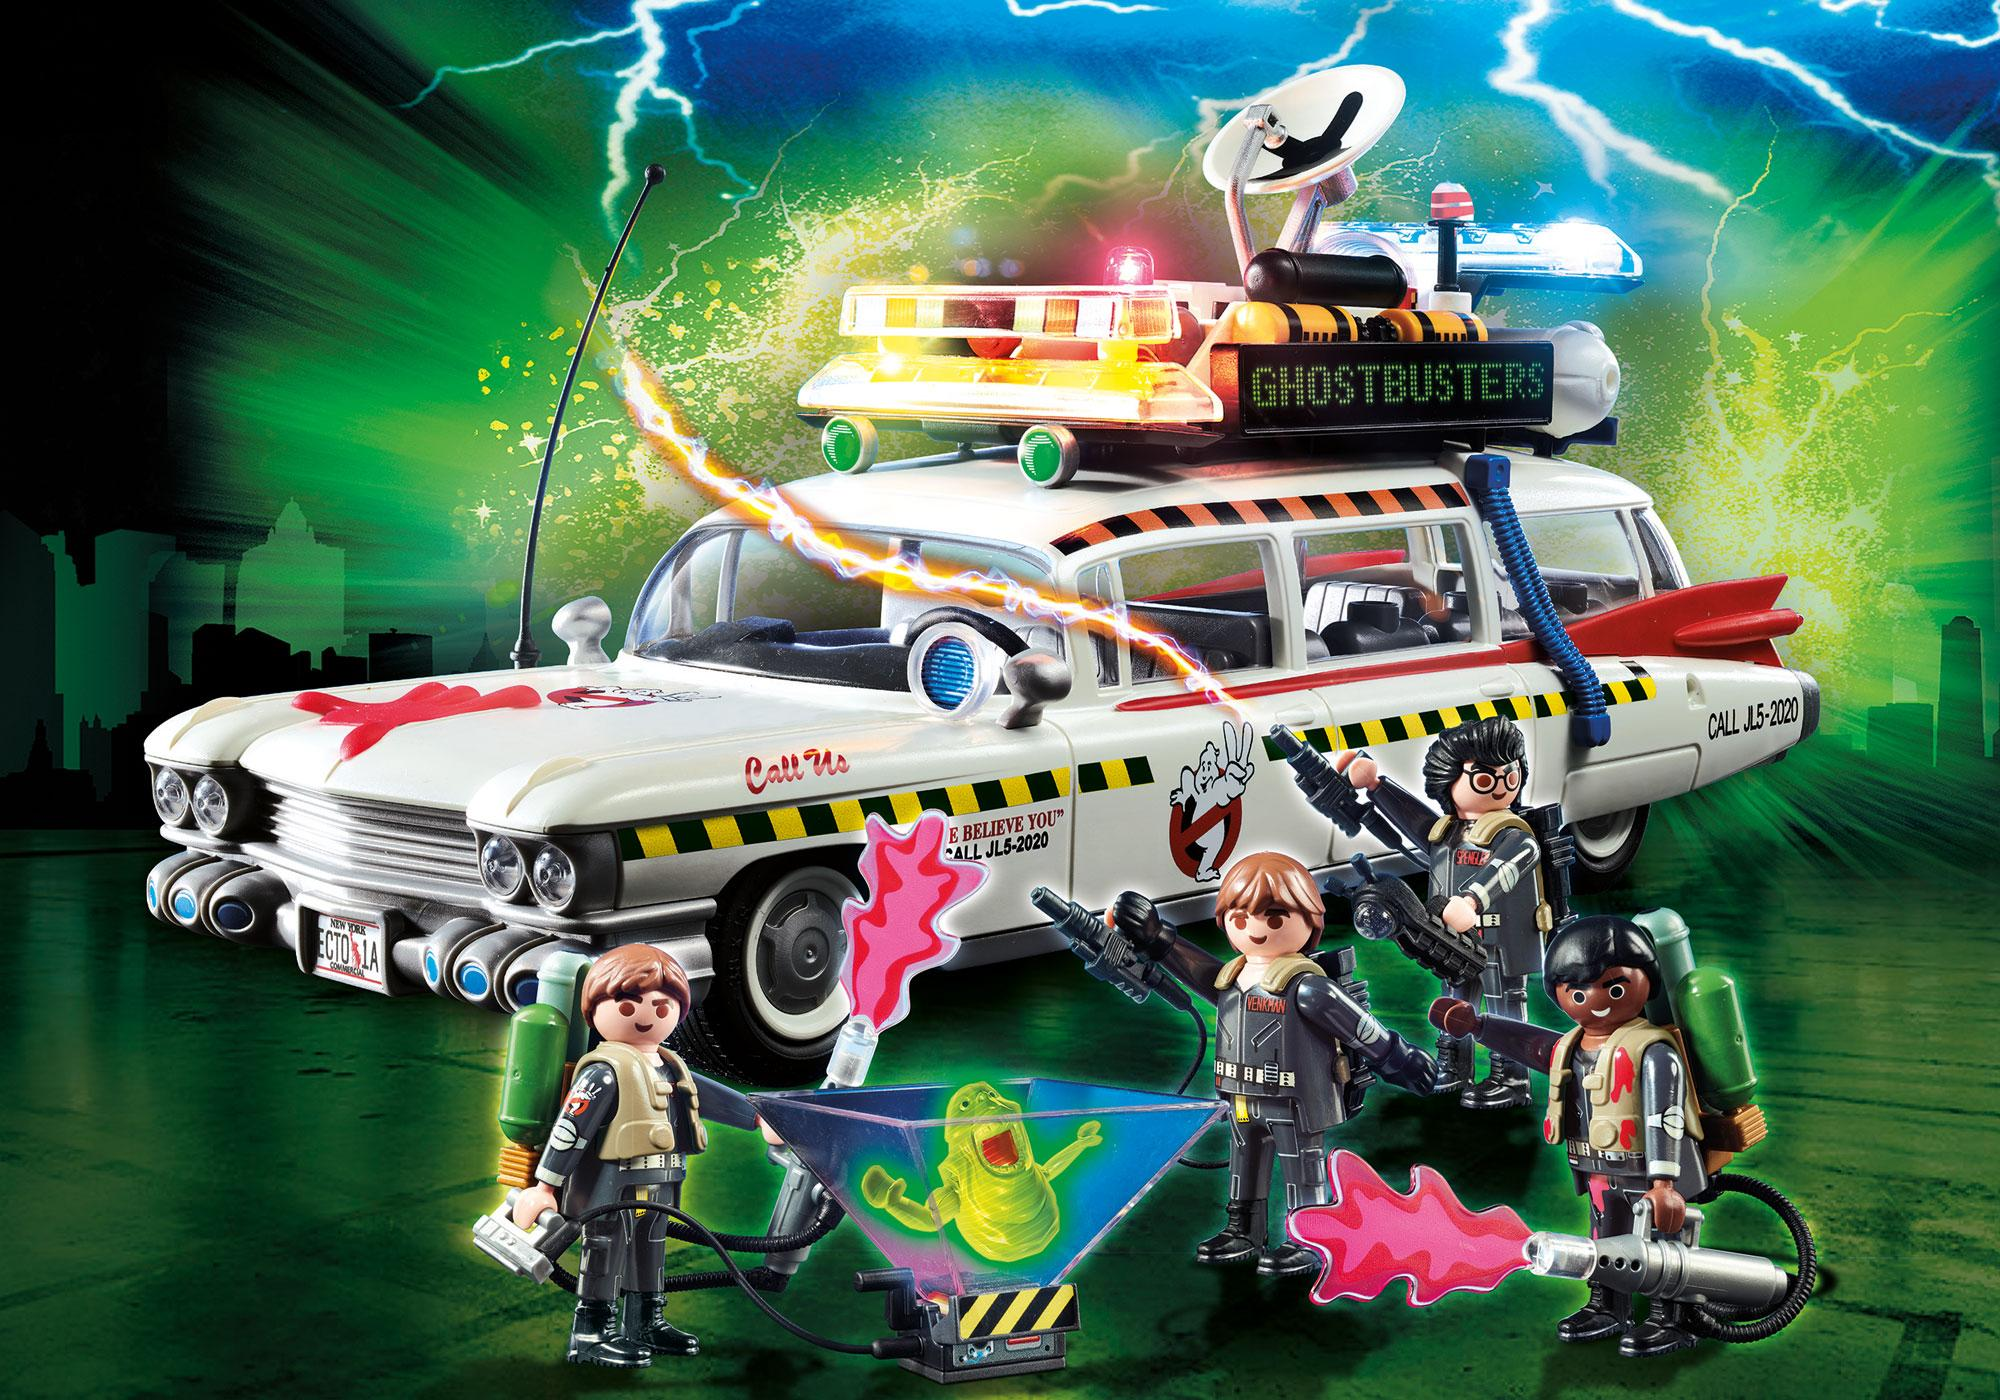 http://media.playmobil.com/i/playmobil/70170_product_detail/Ghostbusters™ Ecto-1A